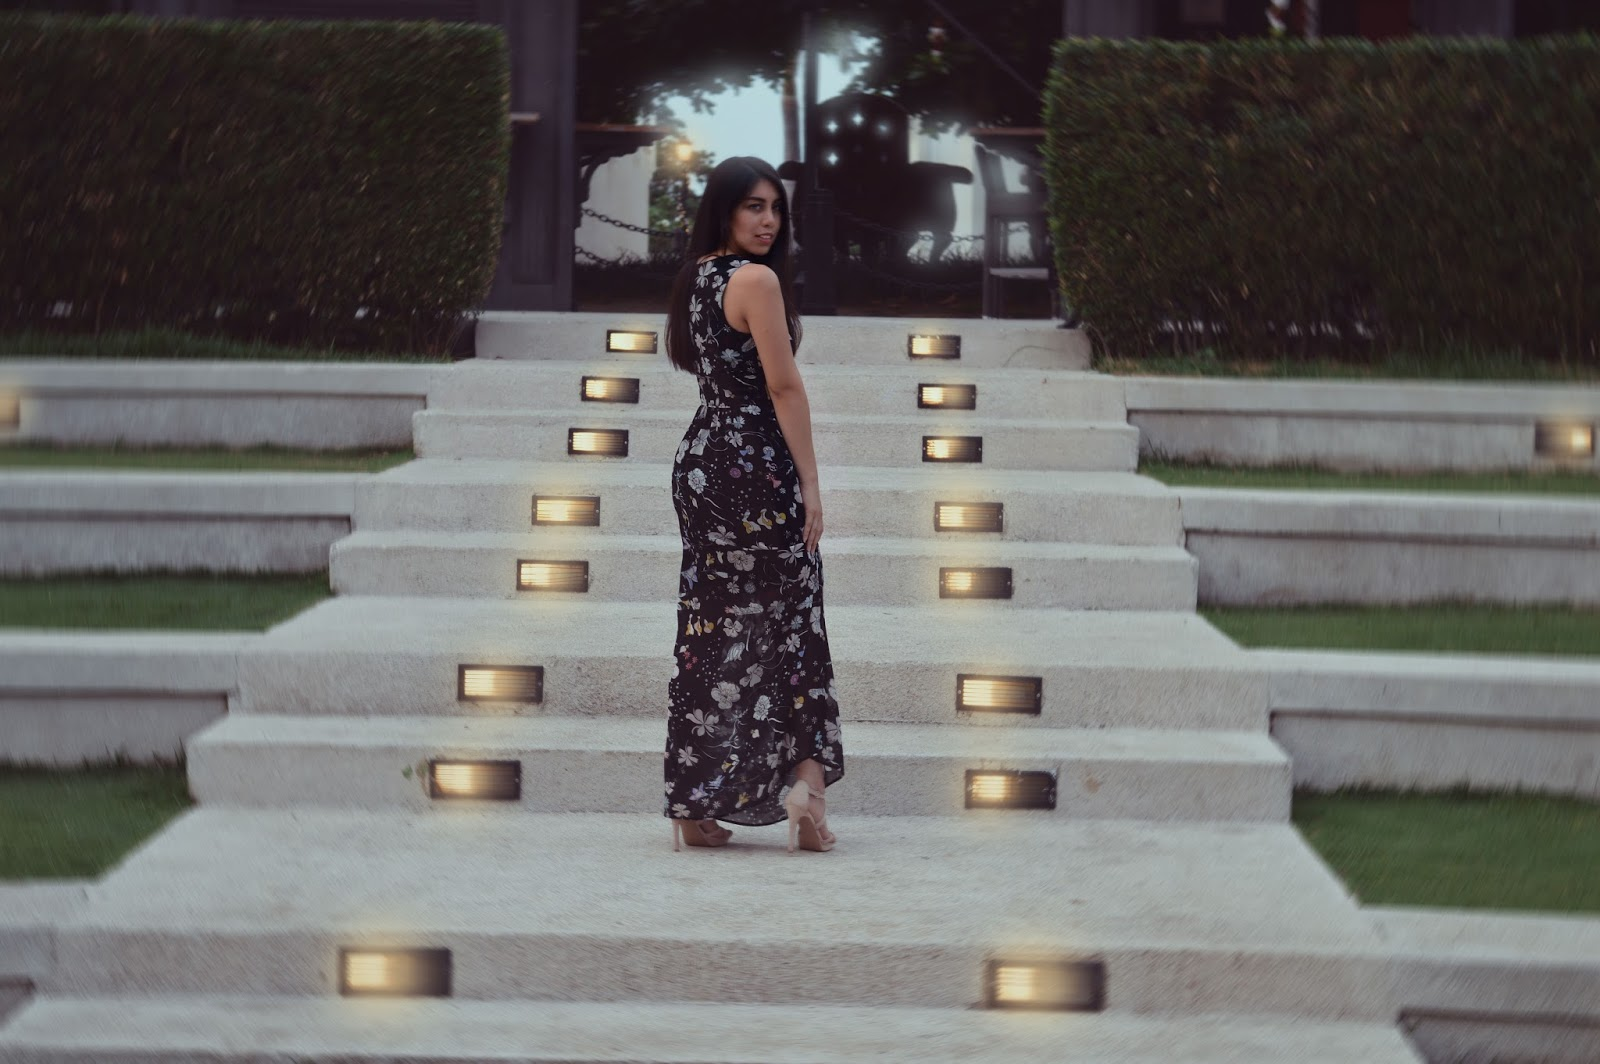 silvia-armas-back-at-it-again-black-floral-maxi-dress-maxidress-style-fashion-blogger-ecuador